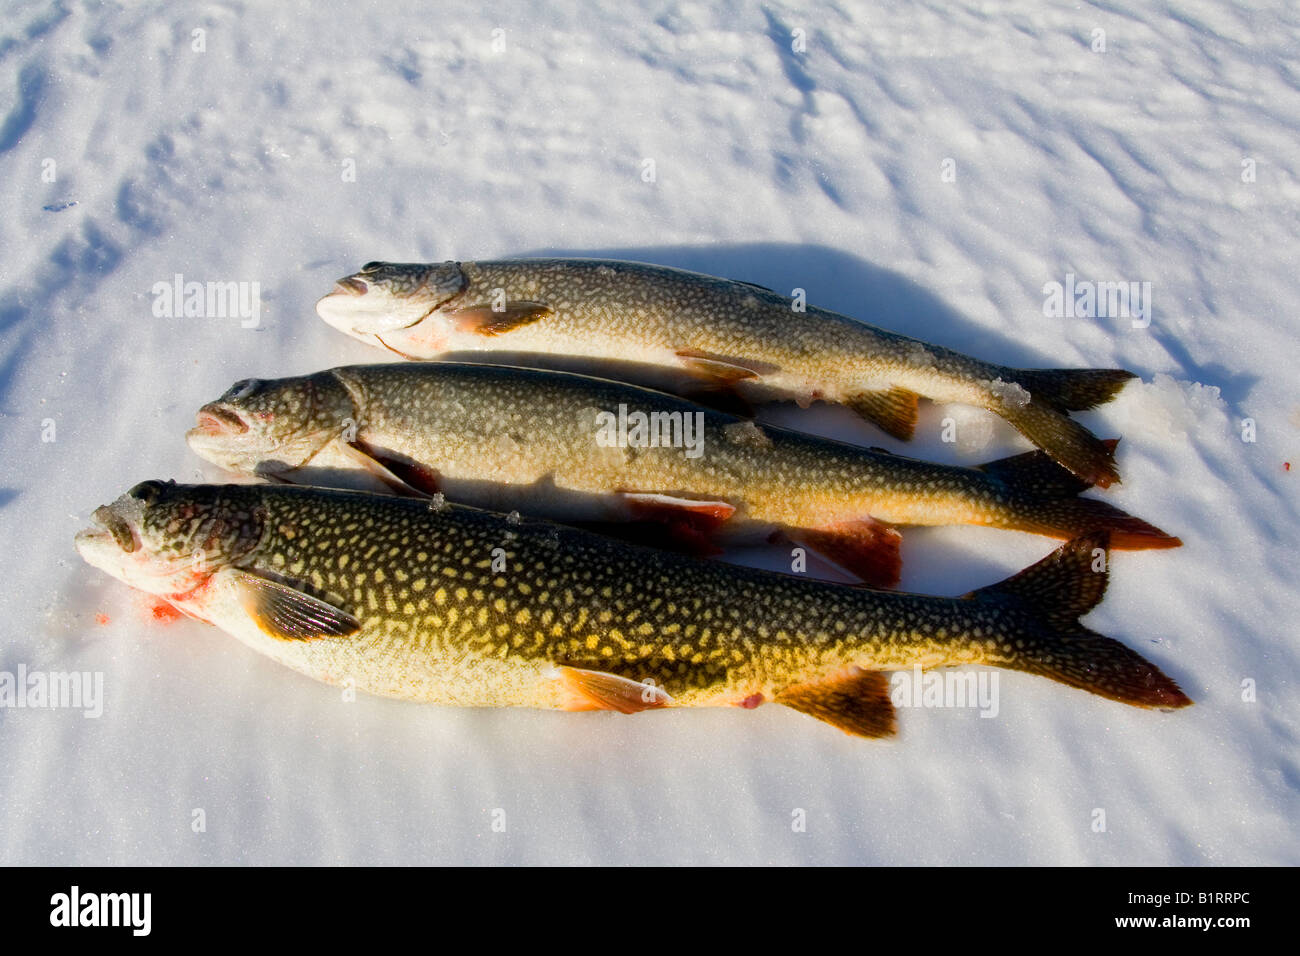 Lake trout salvelinus namaycush caught while ice fishing for Lake trout ice fishing